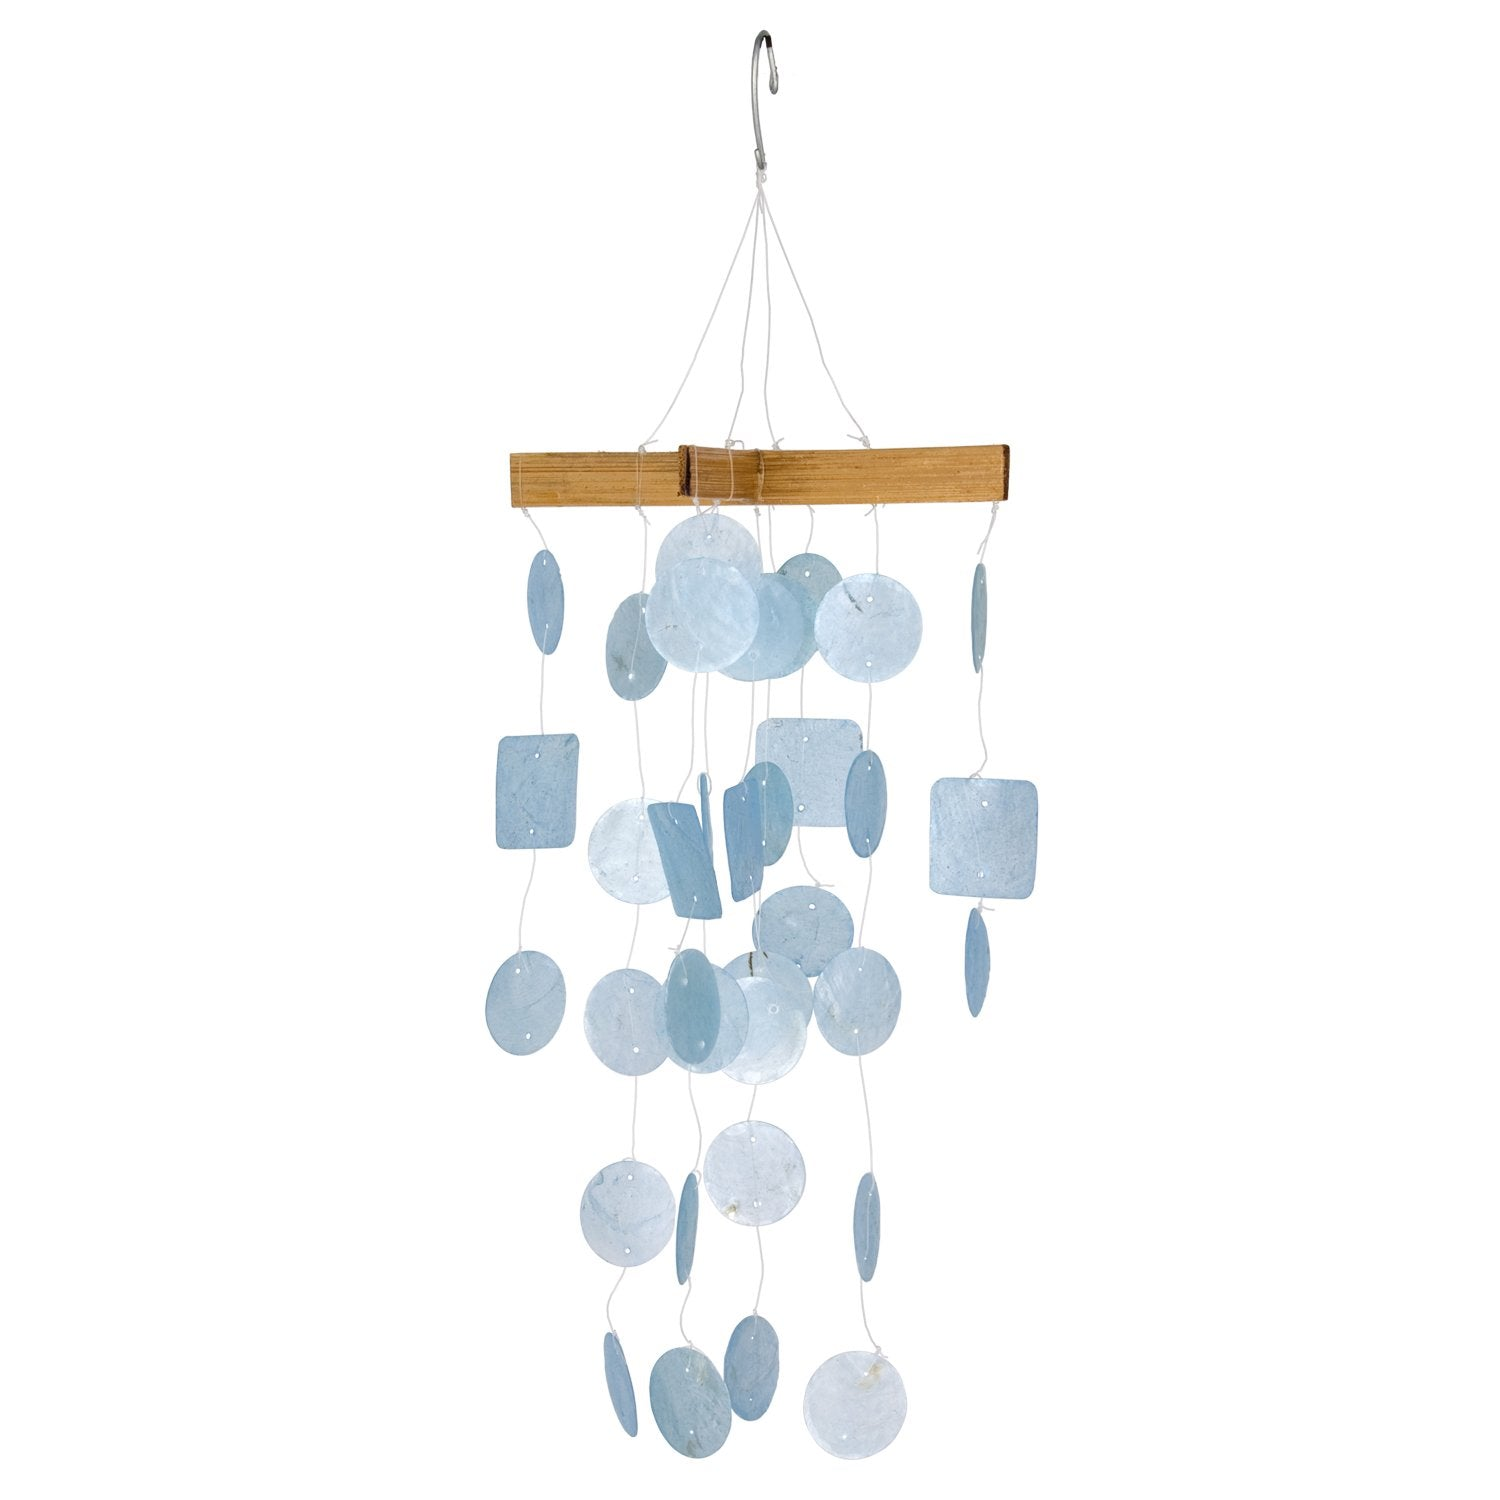 Mini Capiz Chime - Light Blue full product image